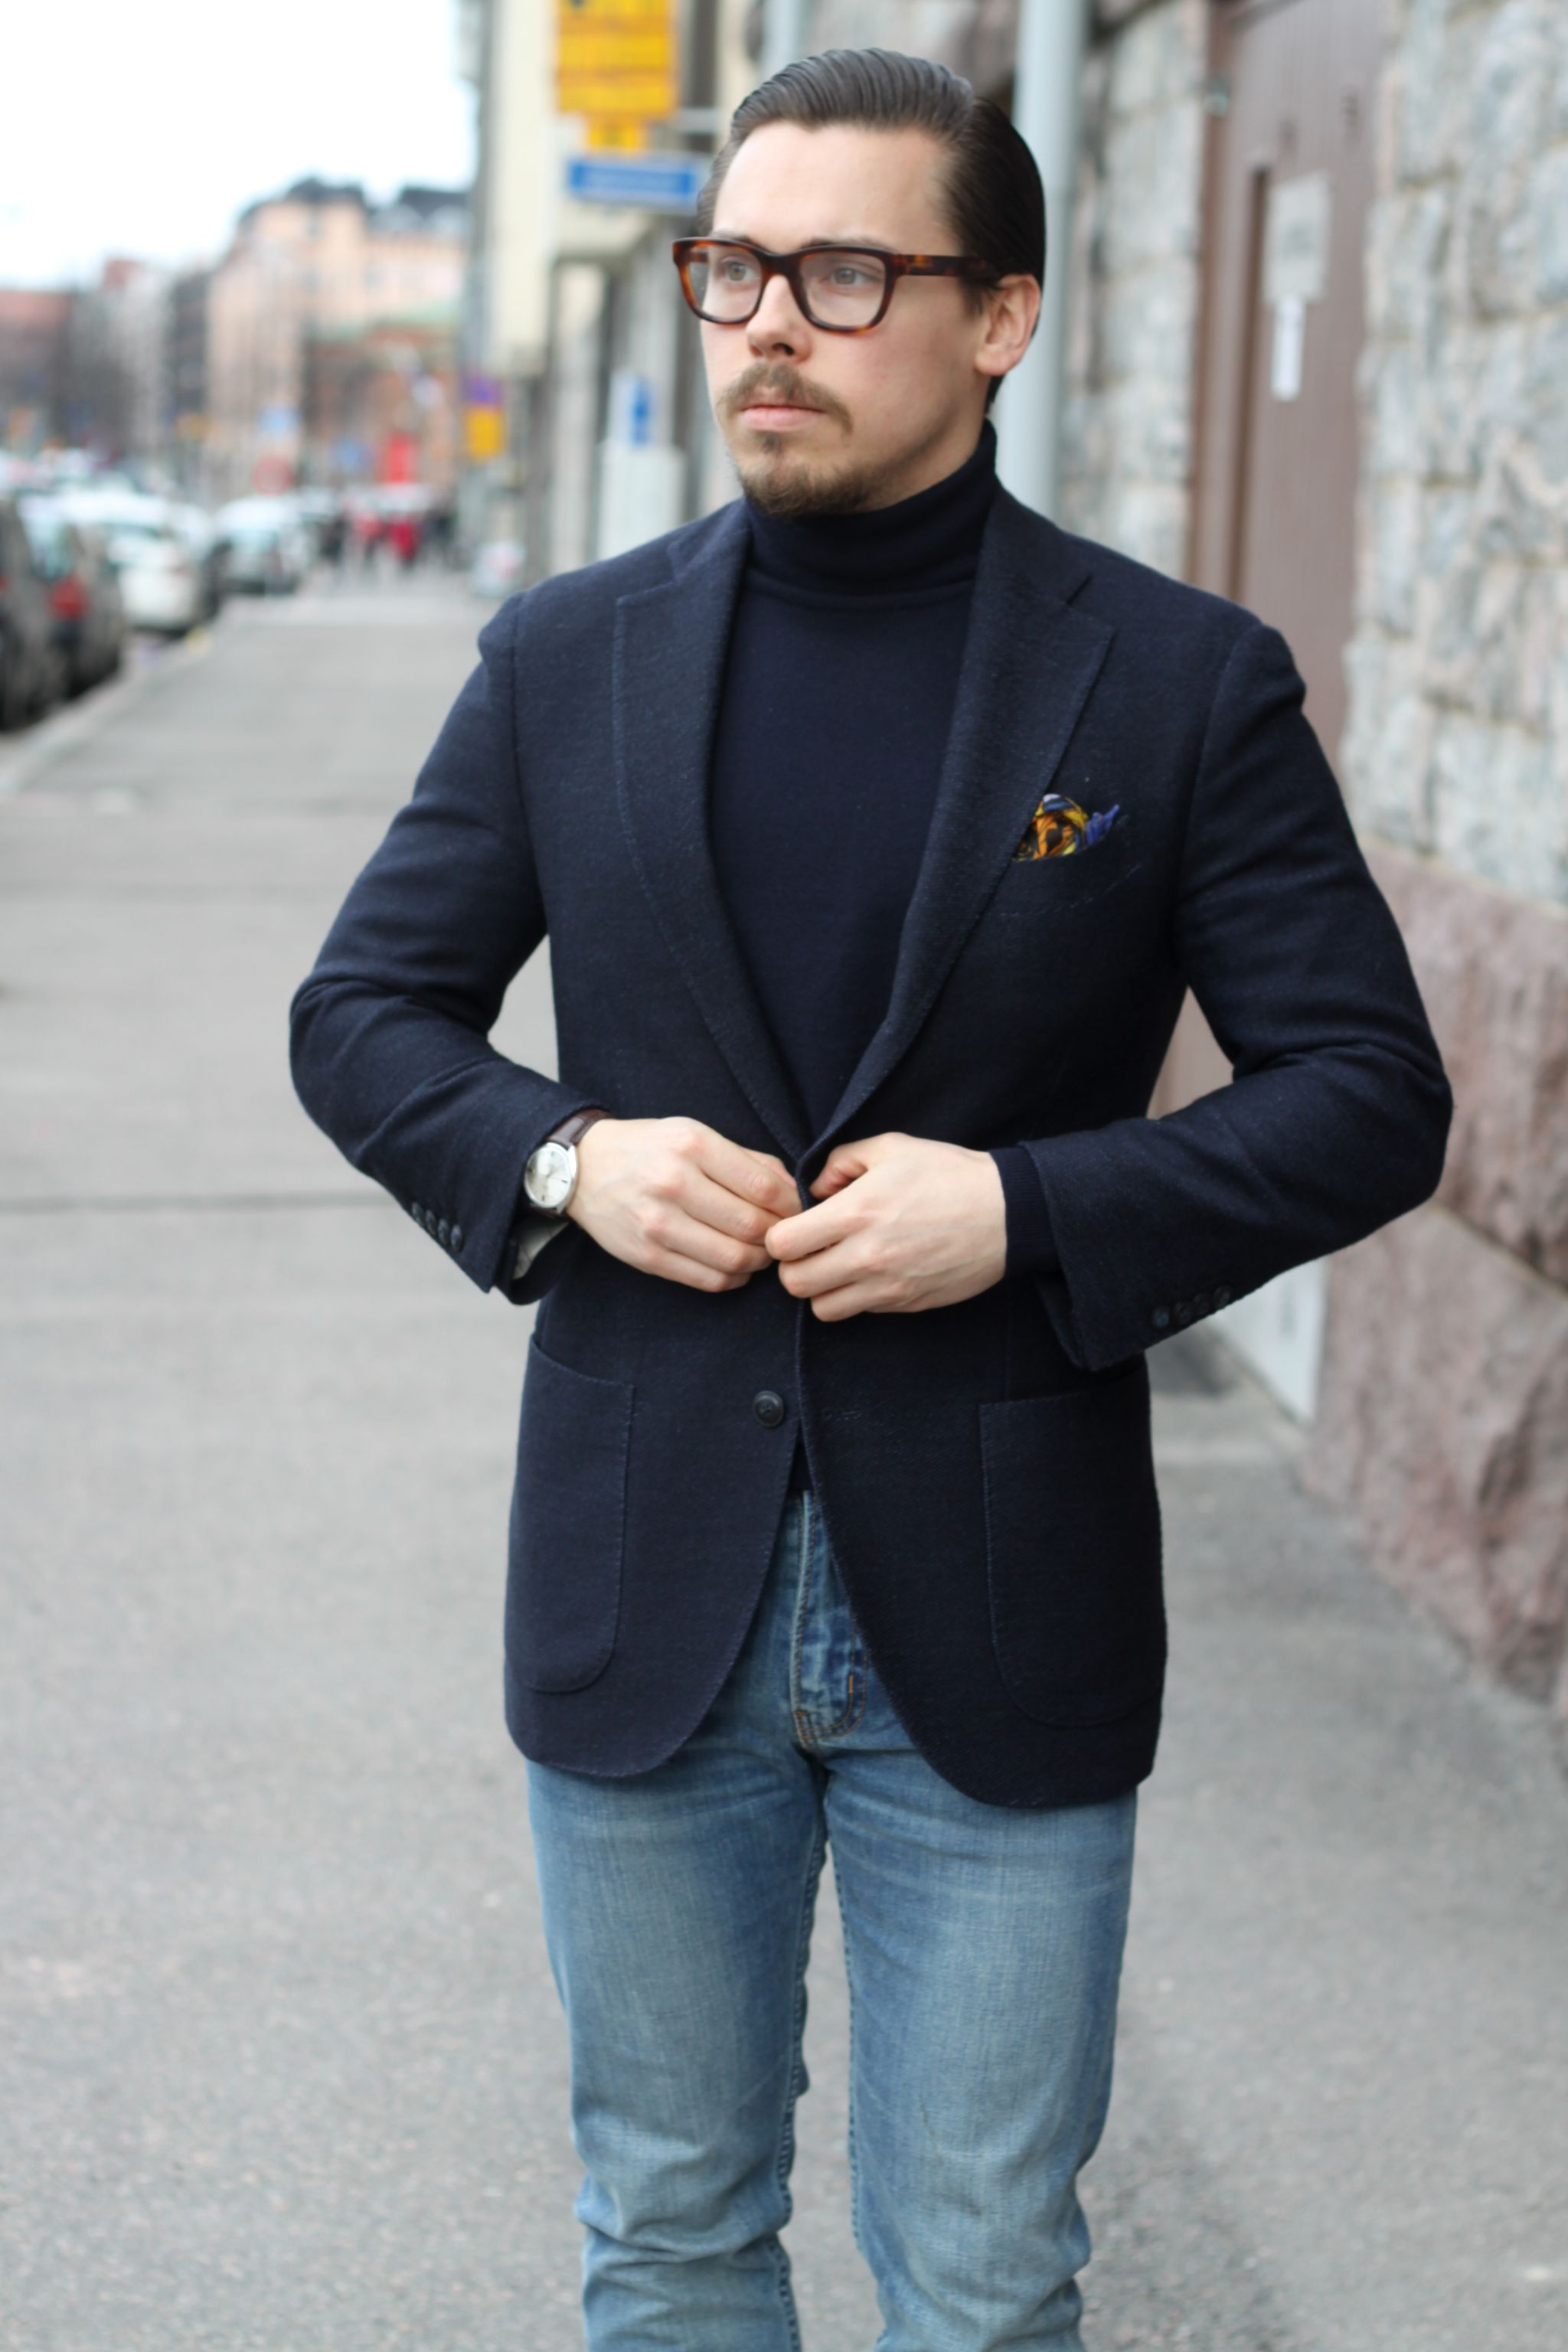 Rose&Born jersey blazer with denim